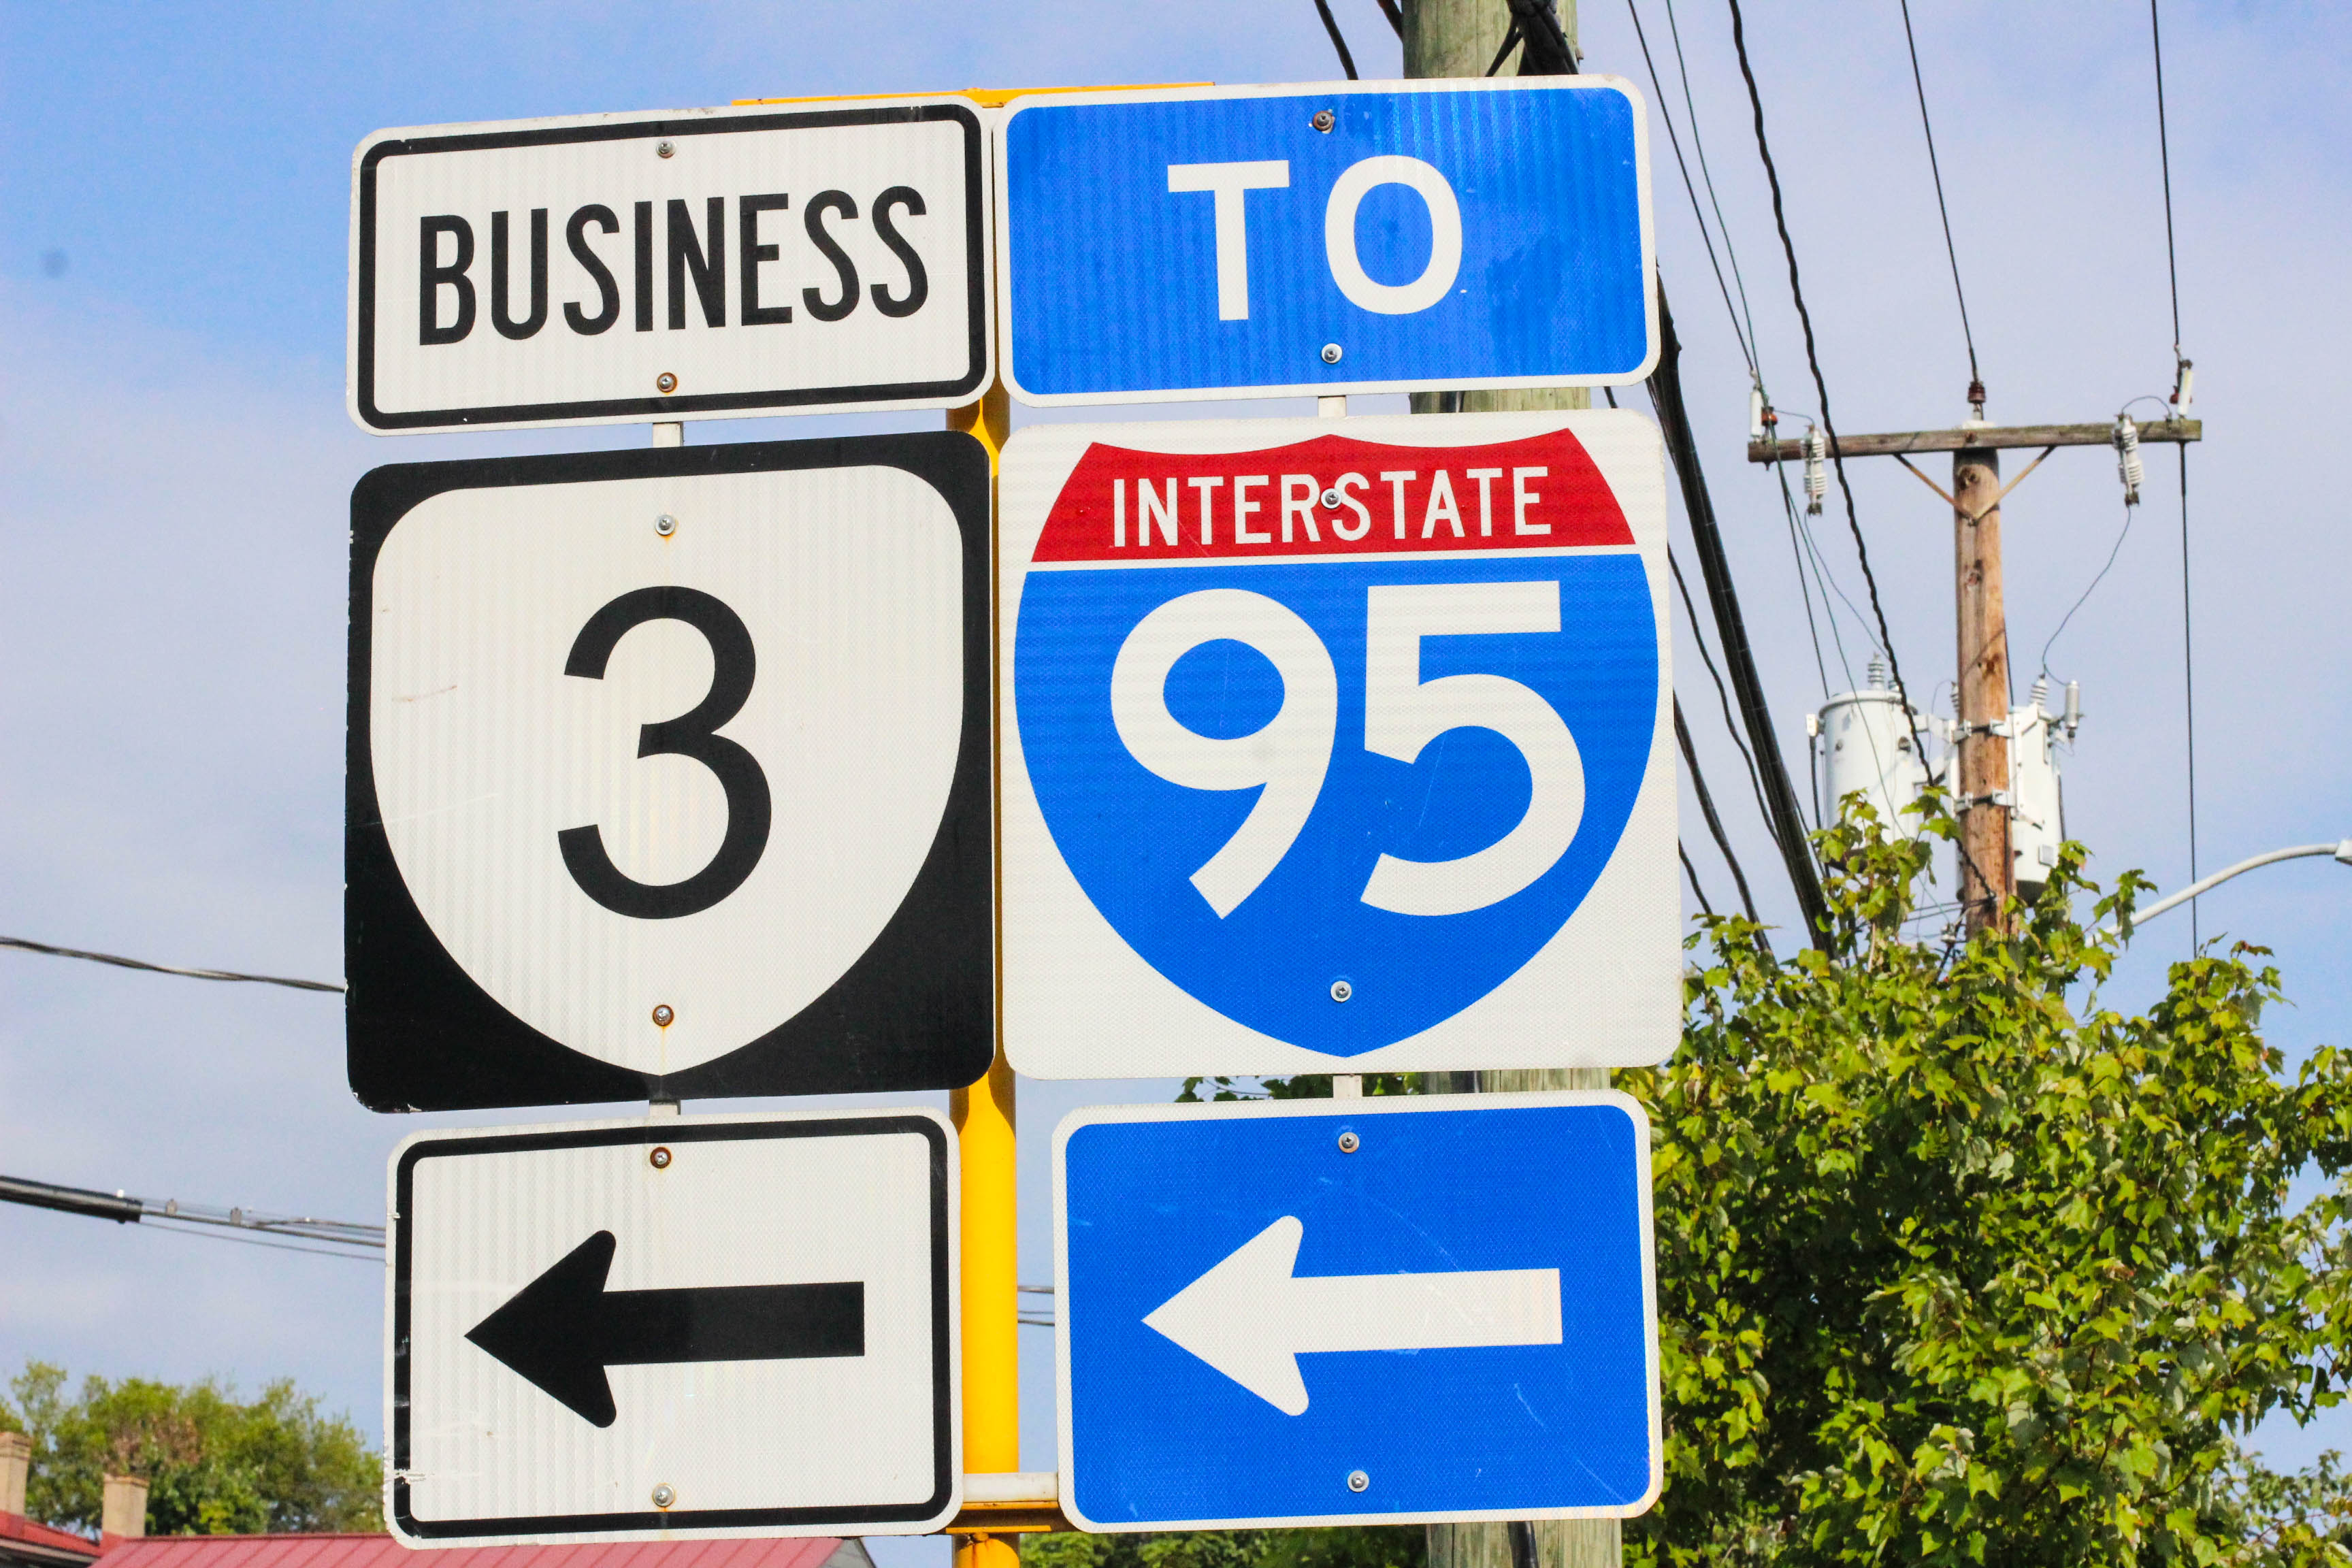 Route 3 and interstate 95 street signs in Fredericksburg, VA